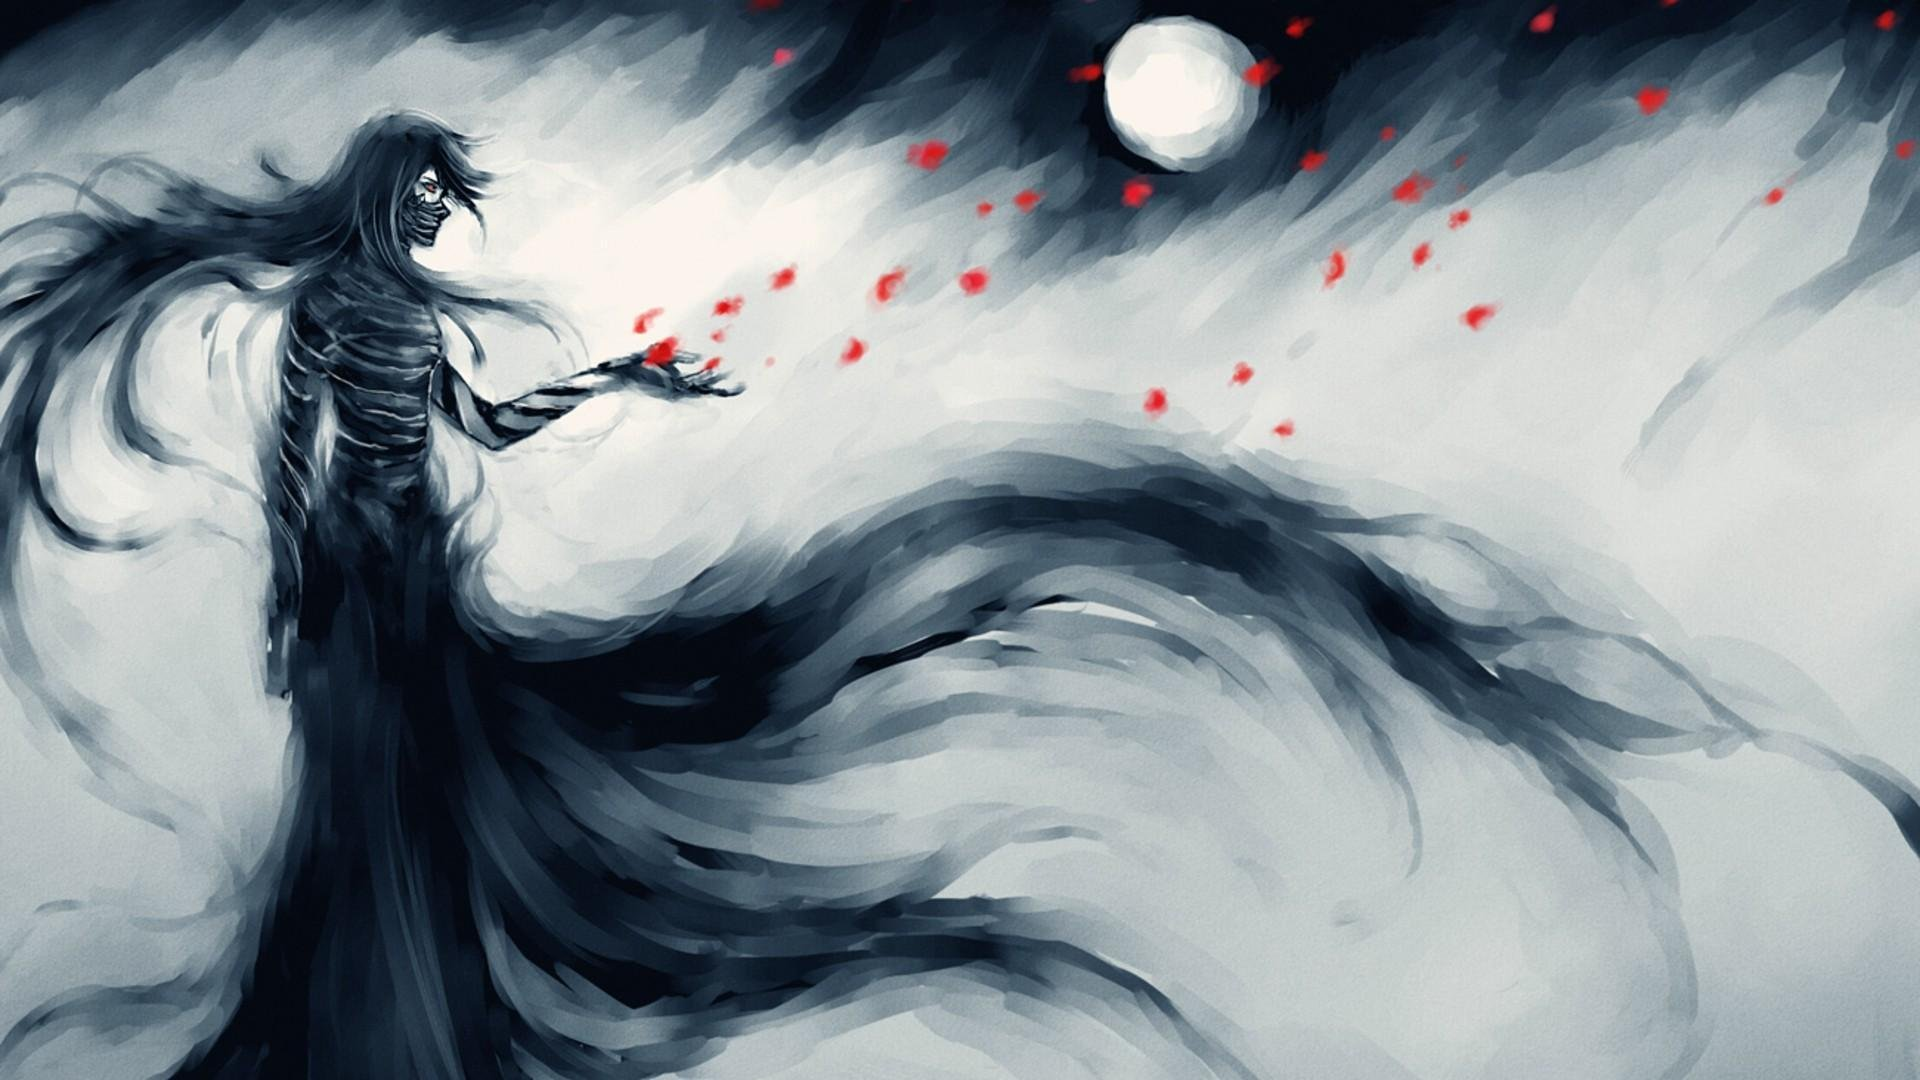 Epic warrior bleach anime ichigo kurosaki wallpaper 1920x1080 1920x1080